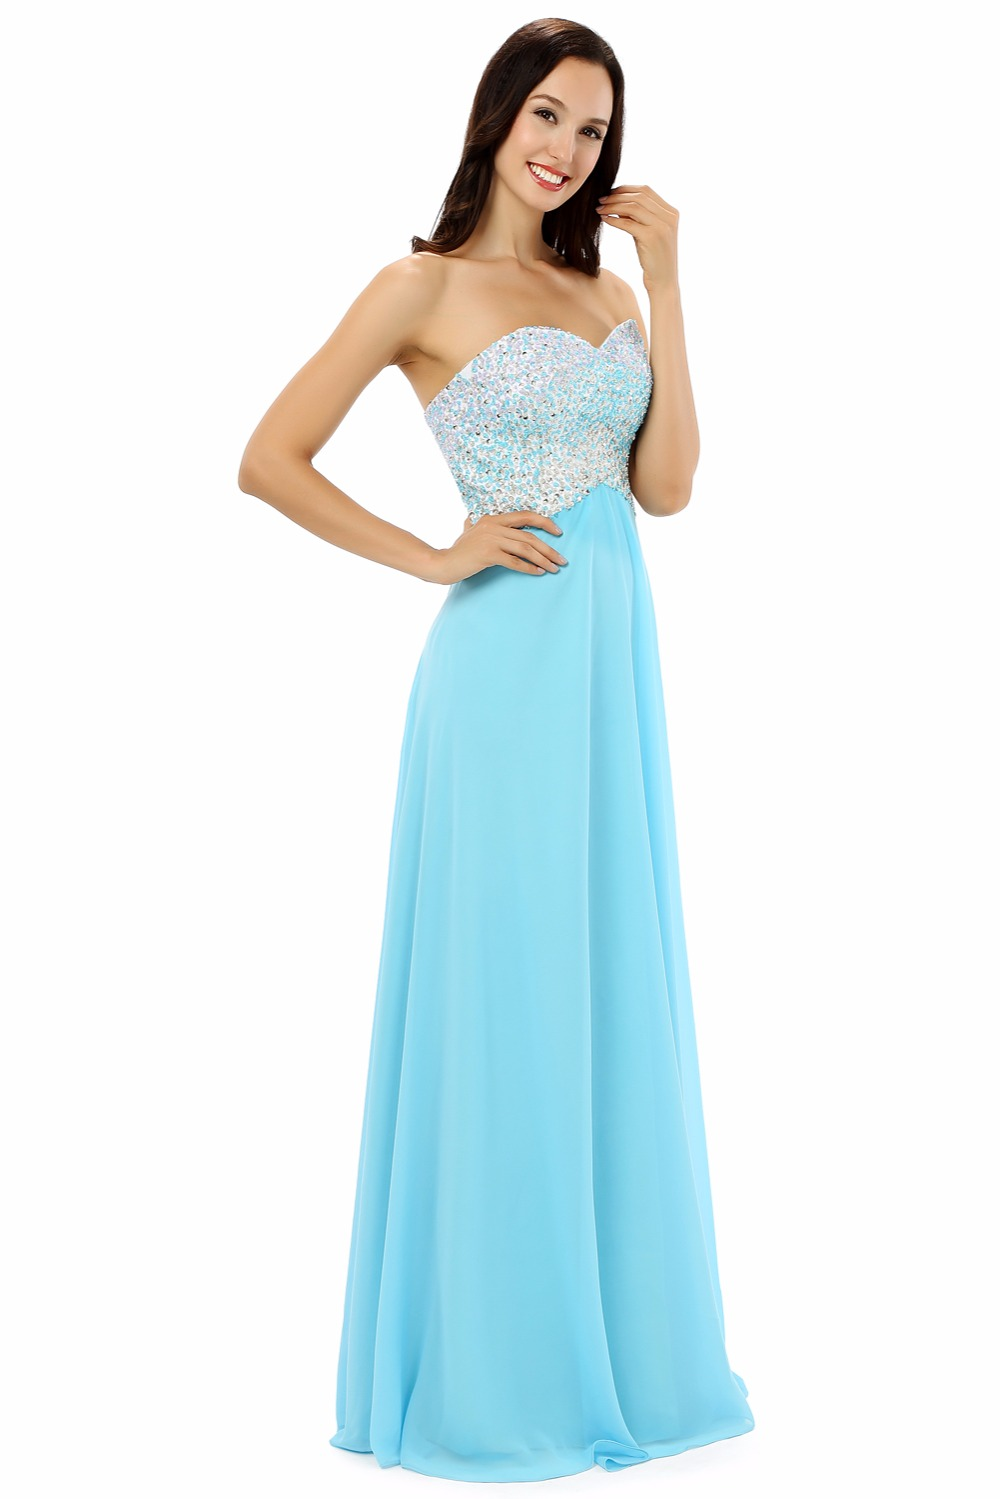 Aliexpress.com : Buy Forevergracedress Original Pictures Turquoise ...